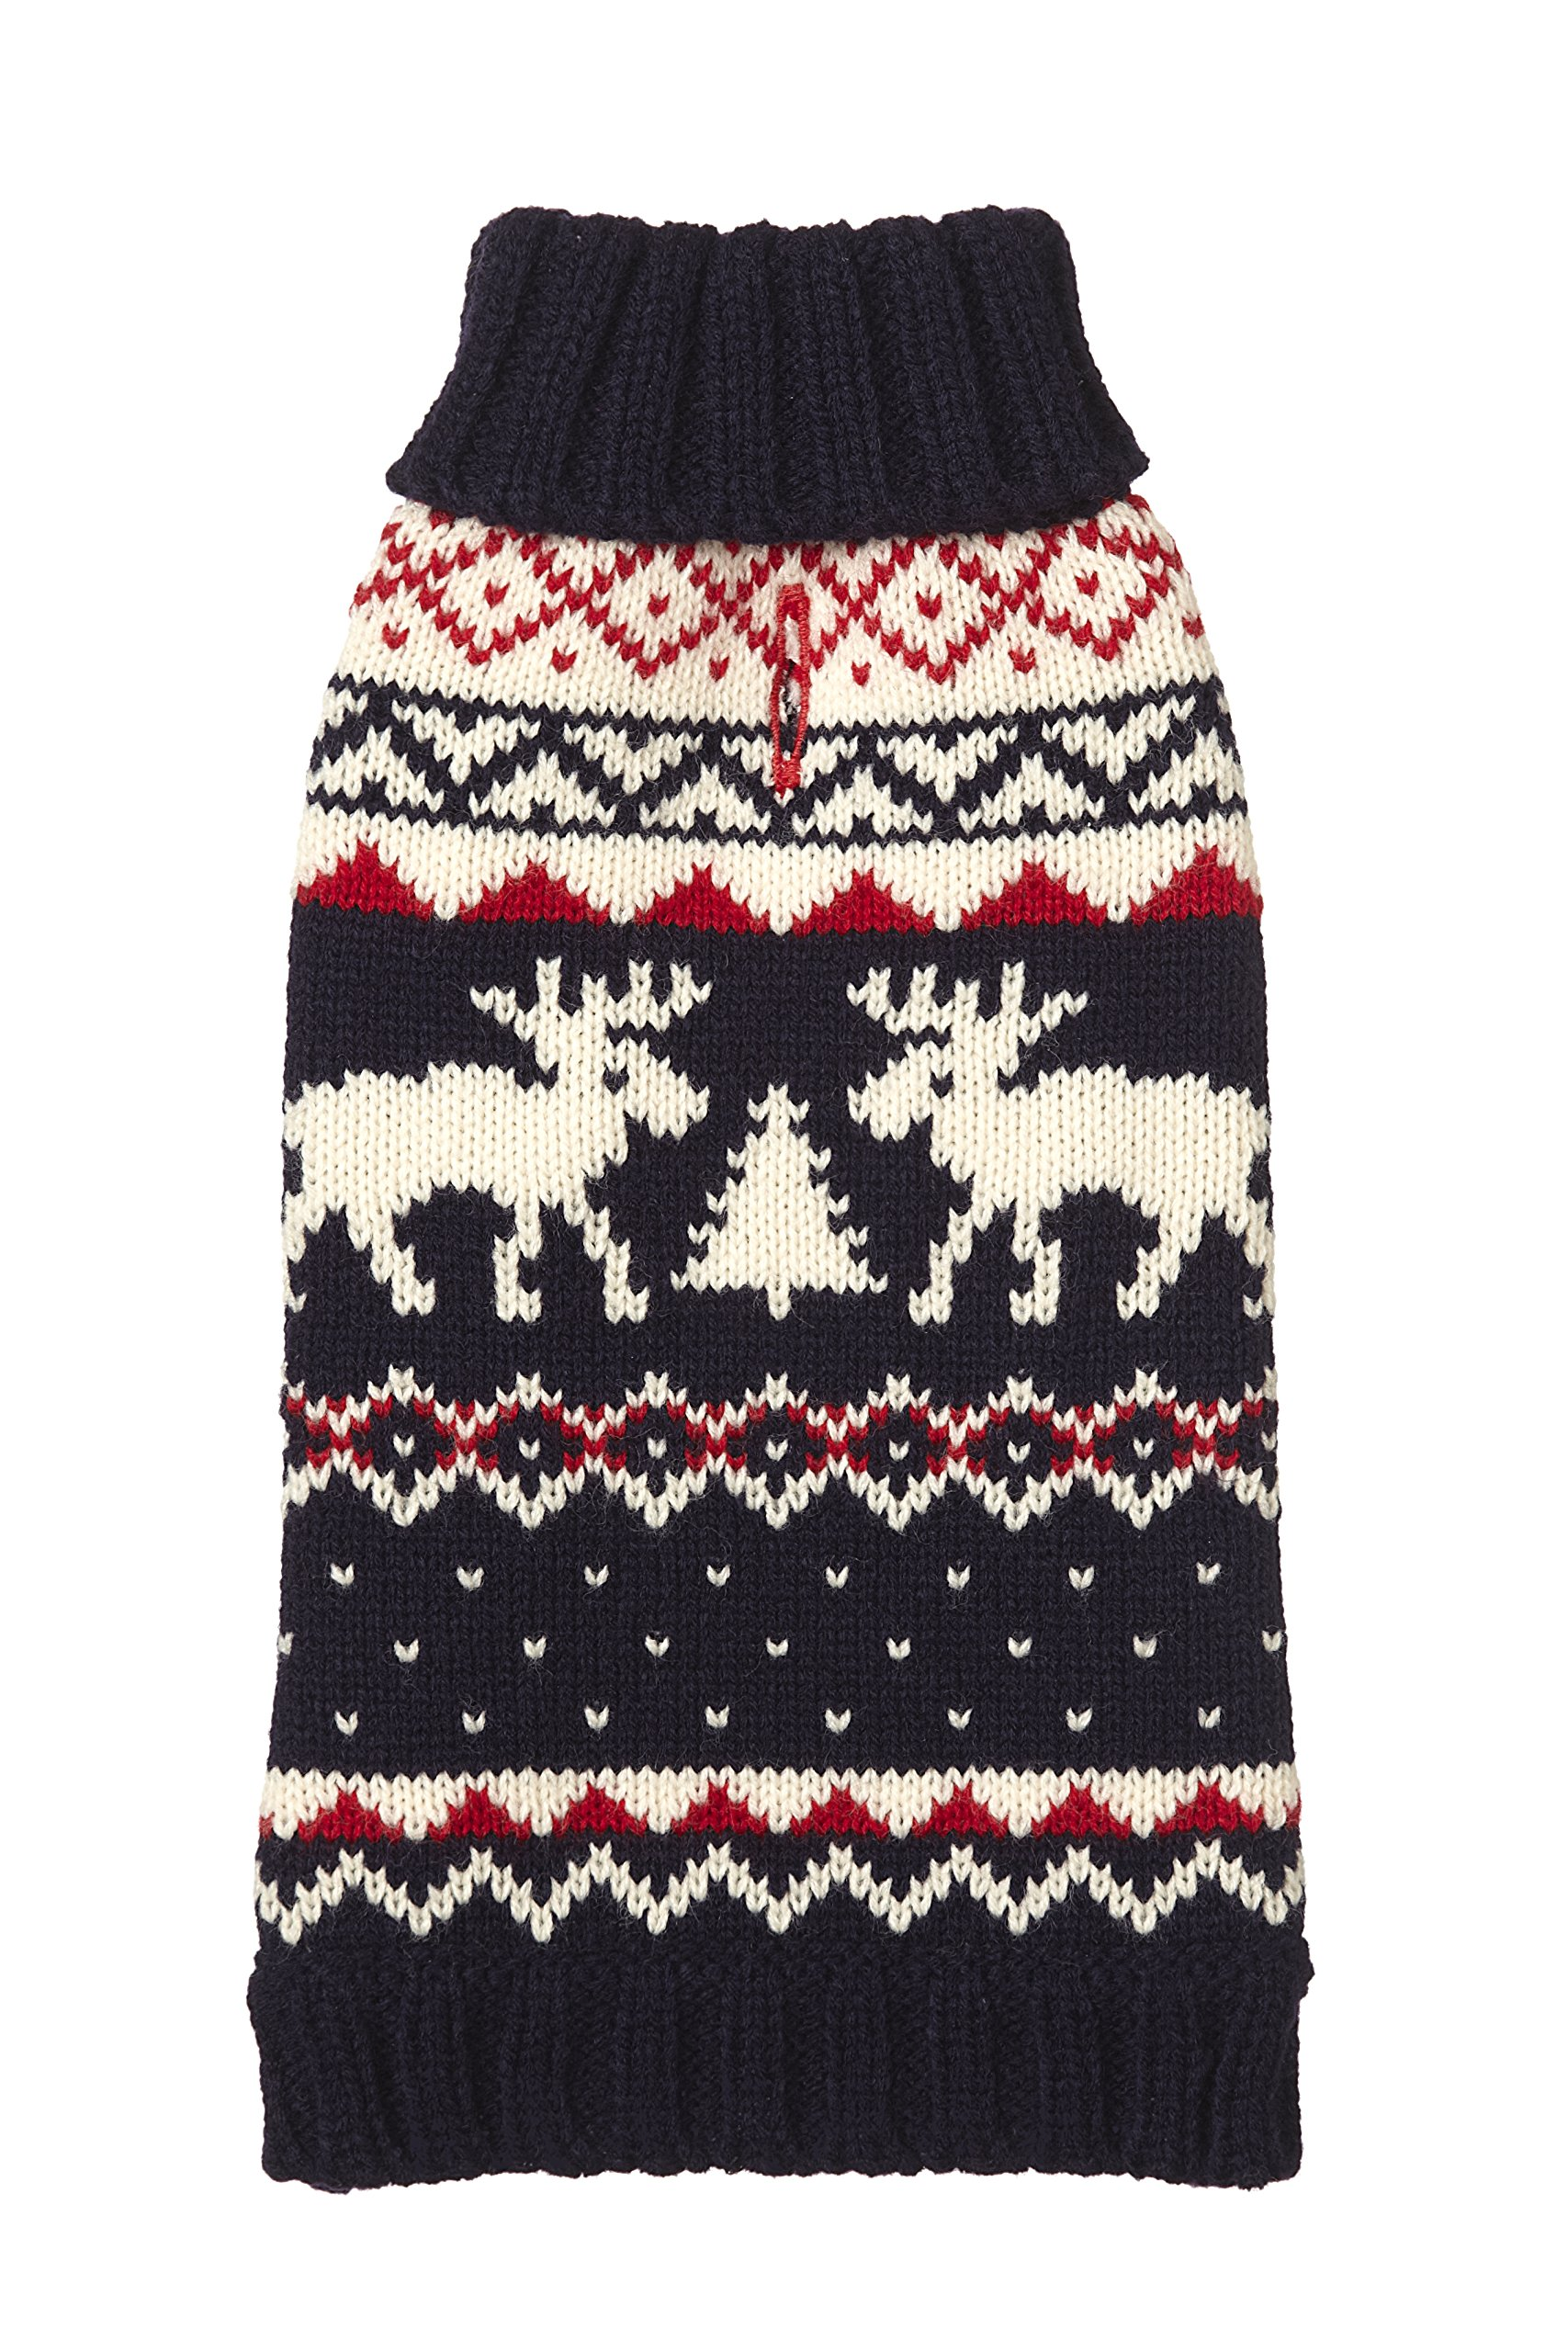 fabdog Navy Fairisle Dog Sweater (24'') by fabdog